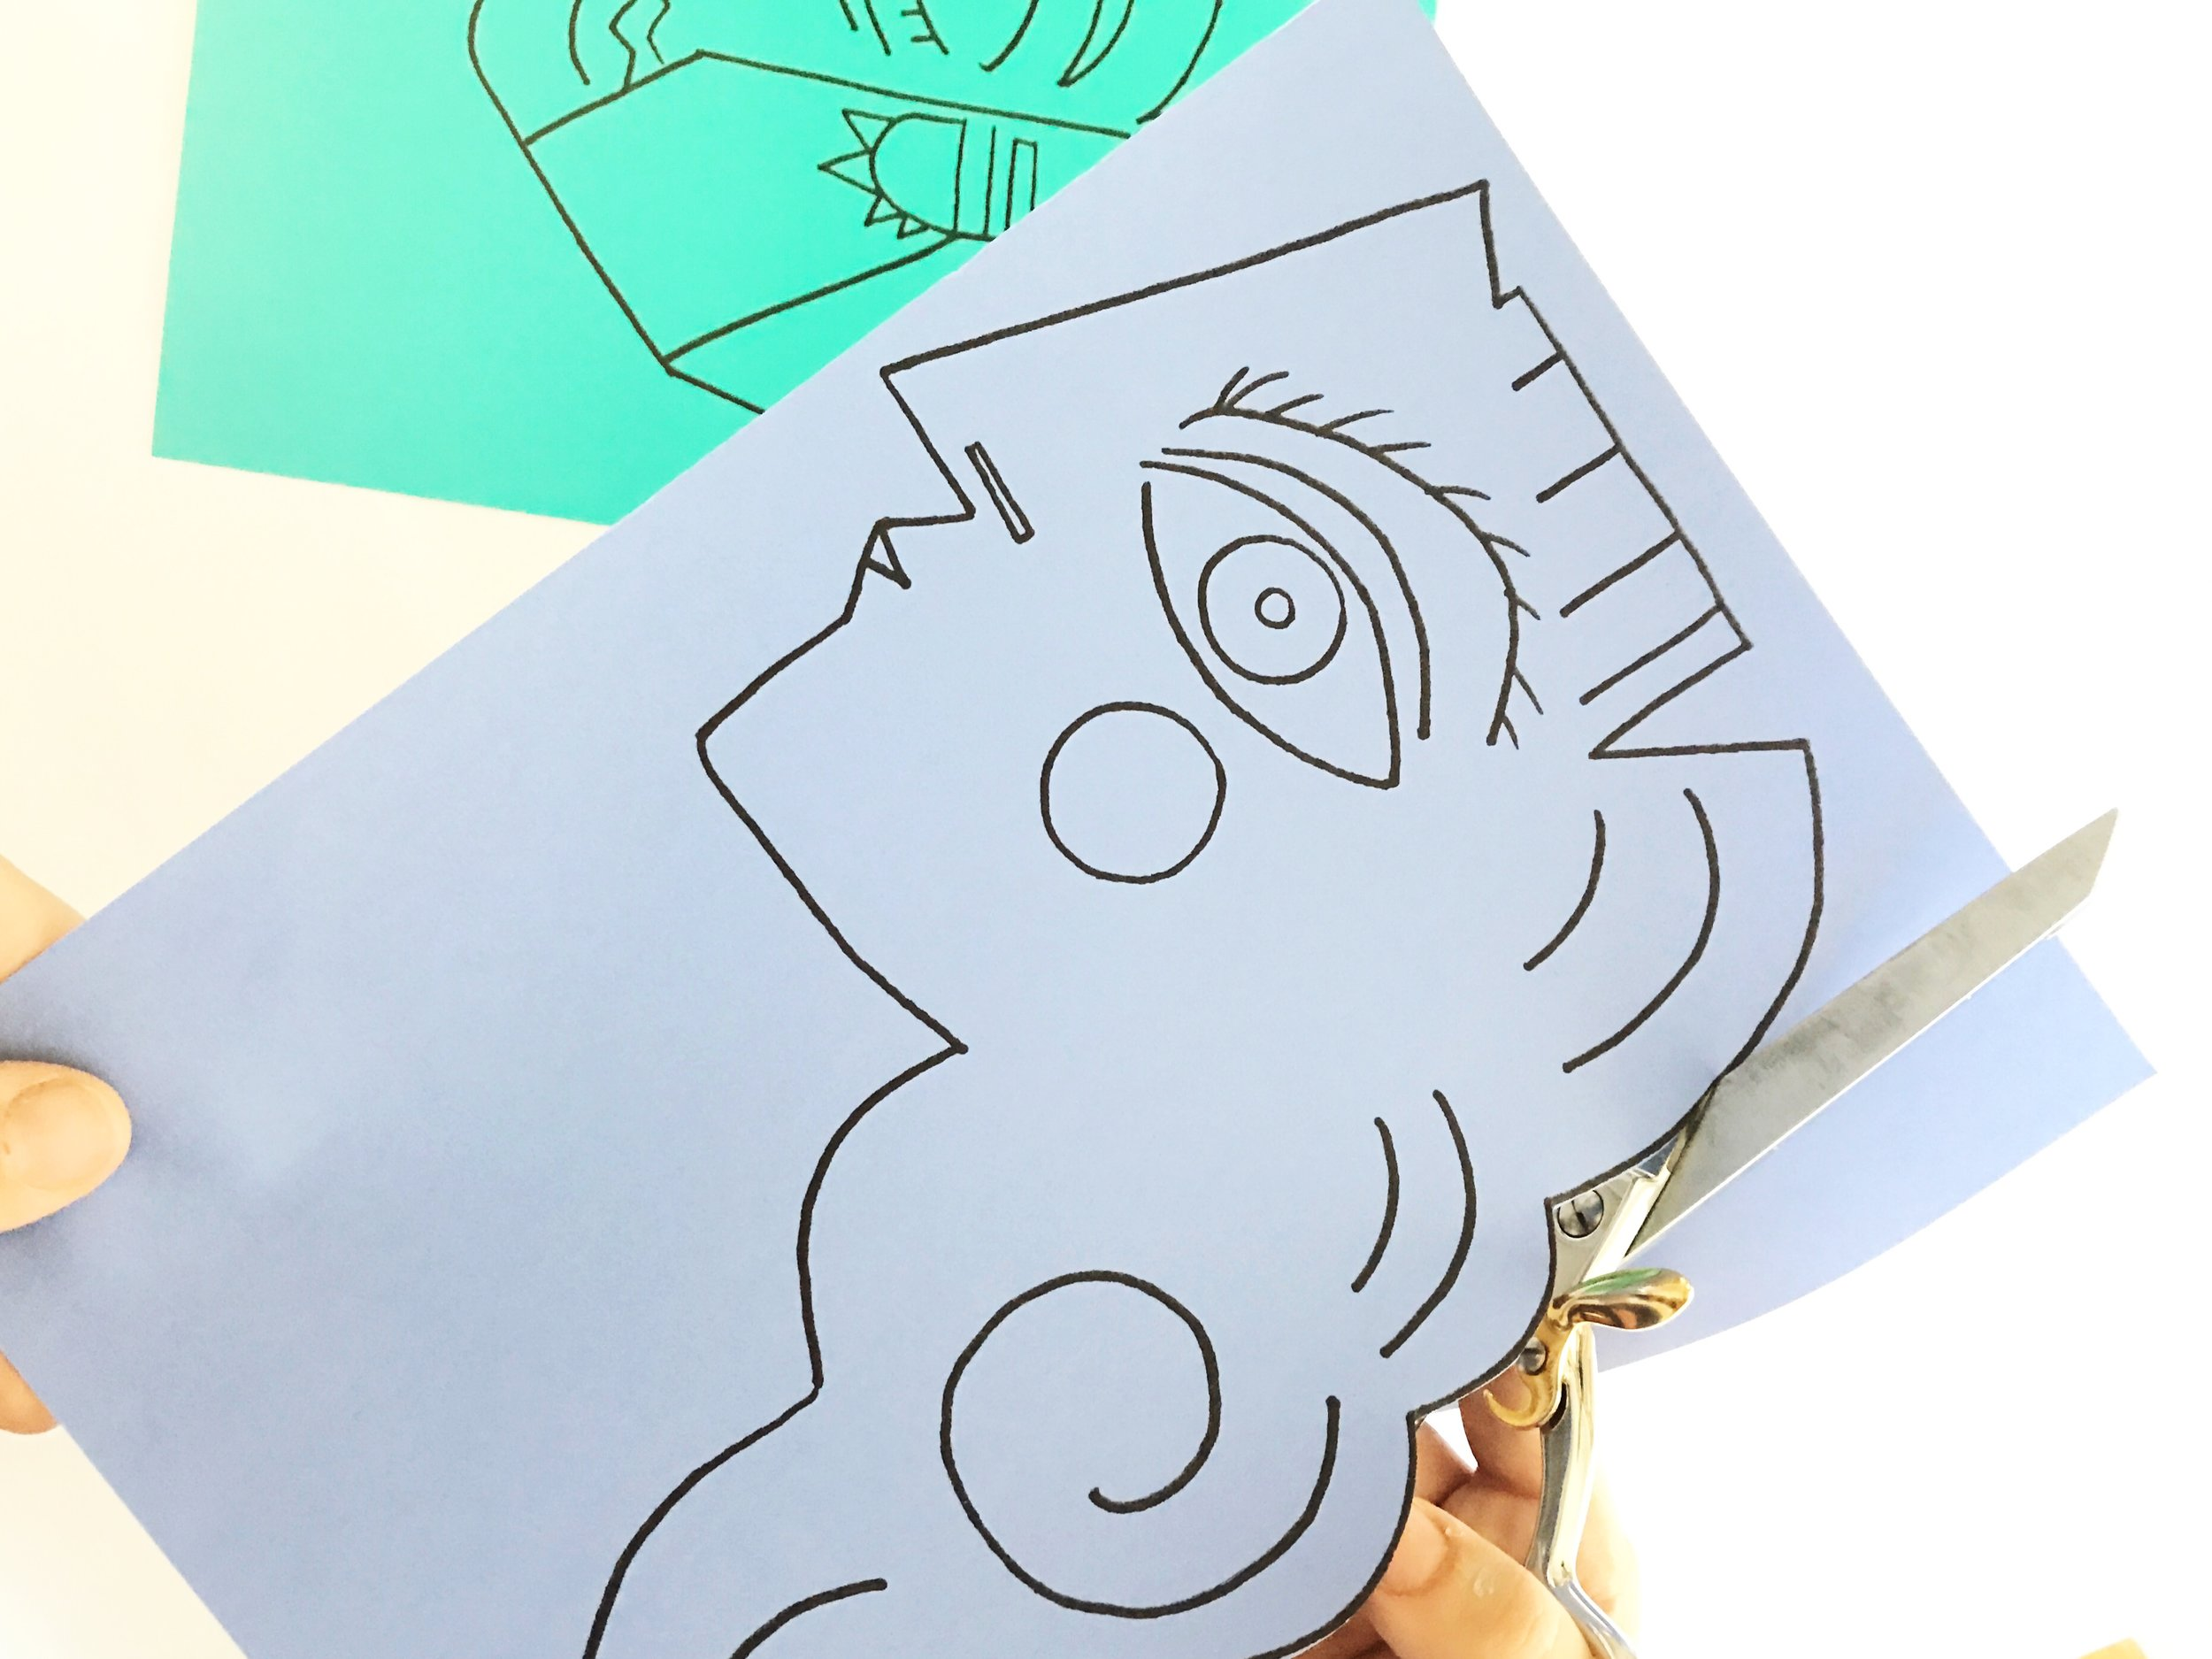 Here we printed our face PDF files on teal and periwinkle colored card stock.